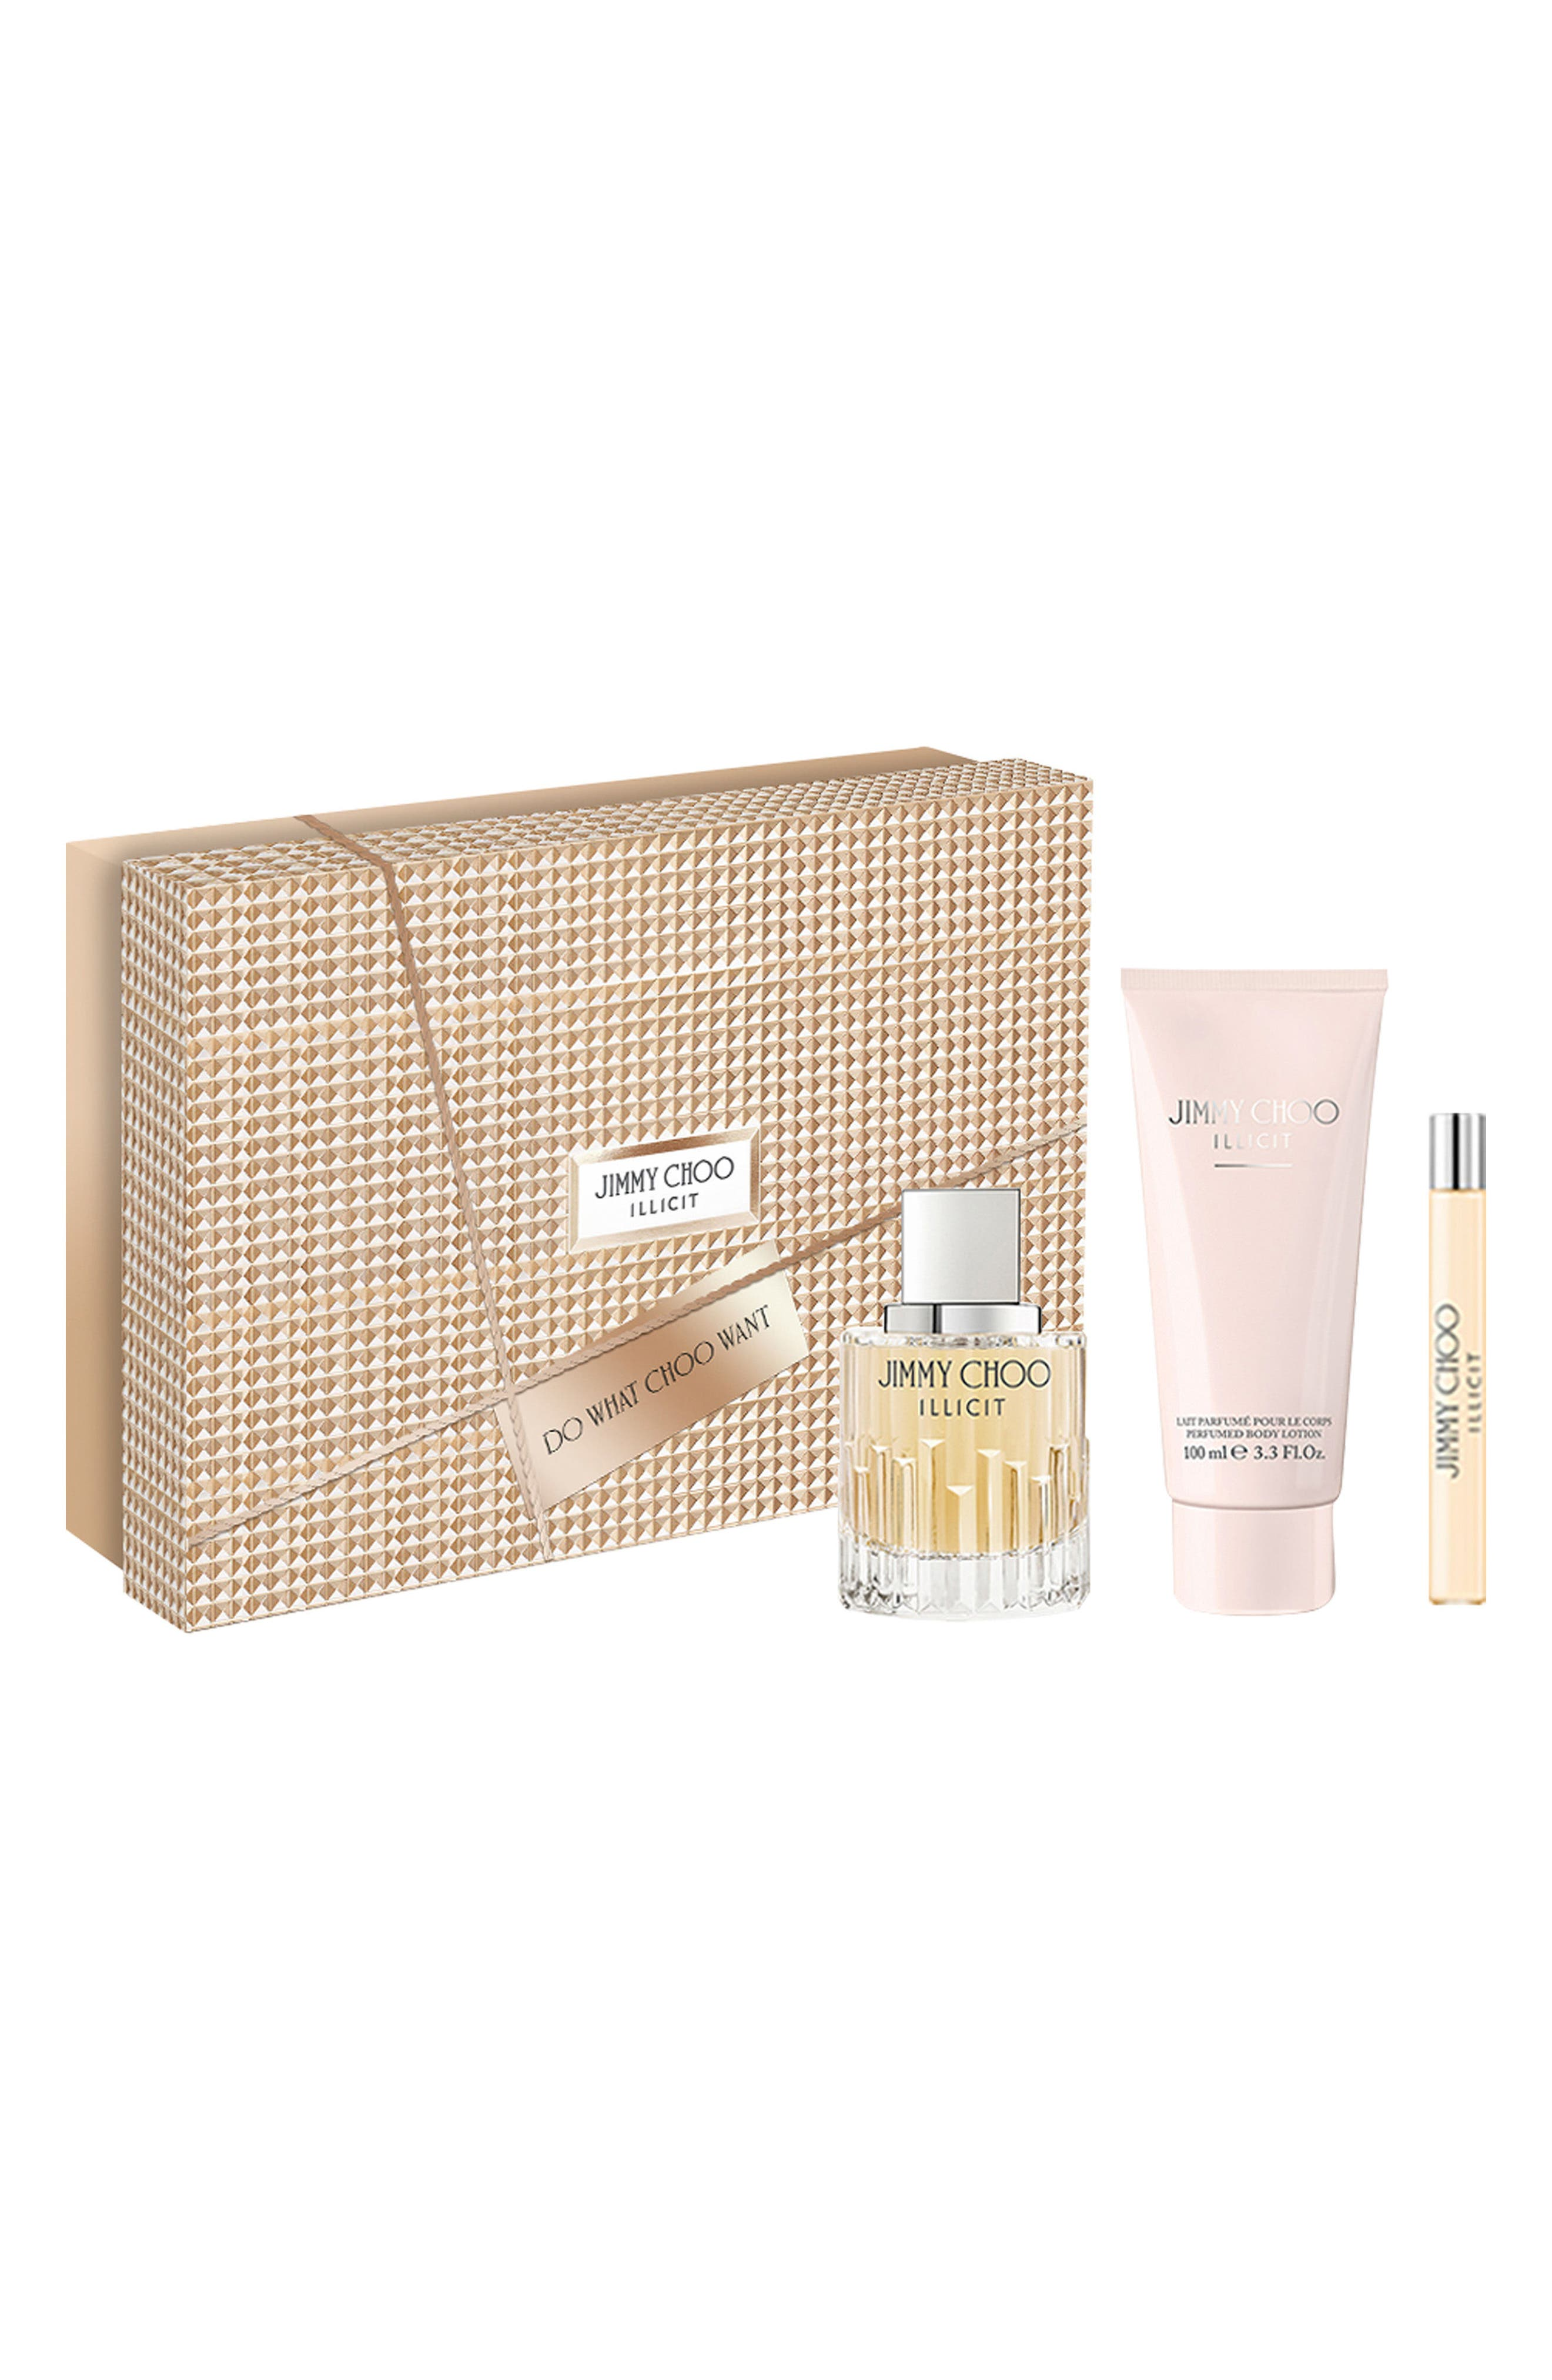 Jimmy Choo Illicit Set (Limited Edition)